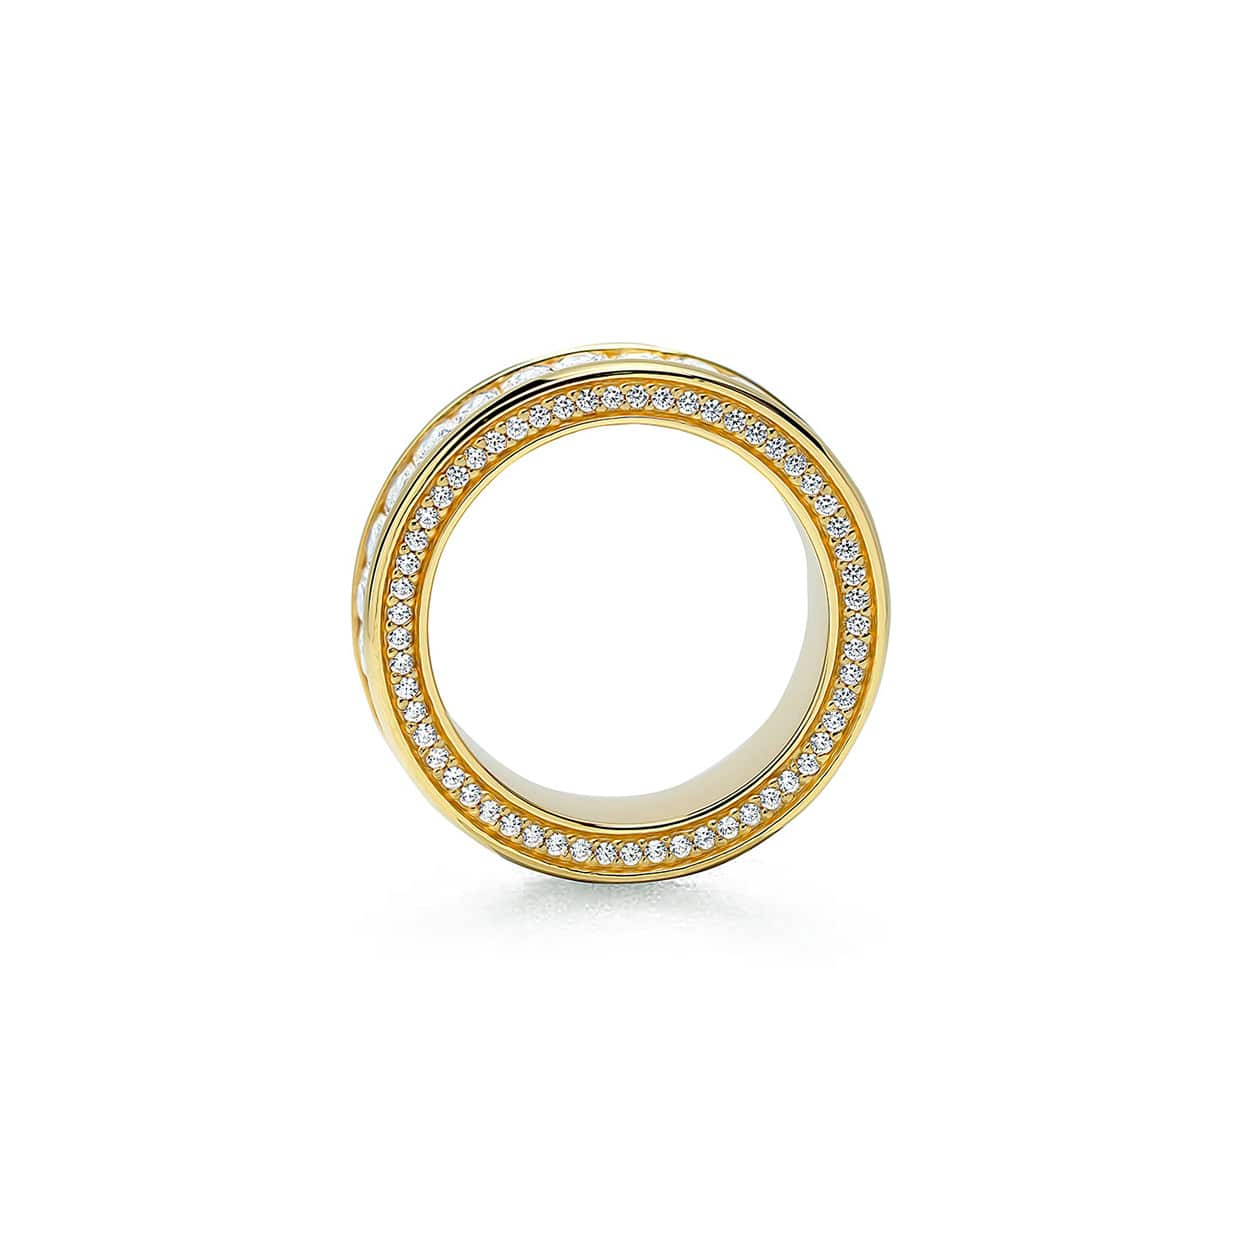 Oxford Gold Emerald Eternity Ring with Side Stones - Abelstedt